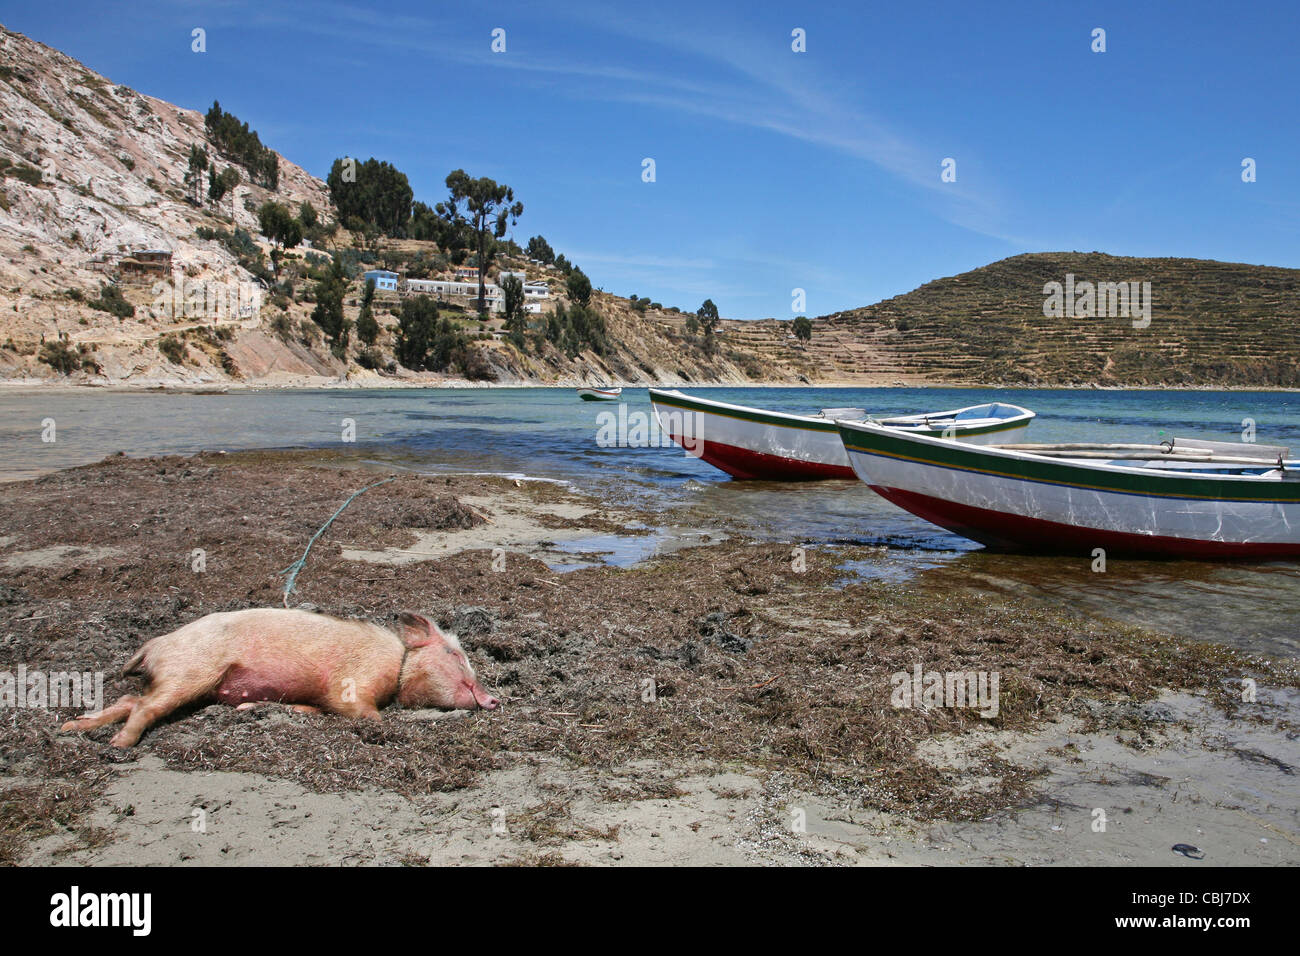 Fishing boats and pig sleeping on shore of Lake Titicaca, Isla del Sol, Bolivia - Stock Image